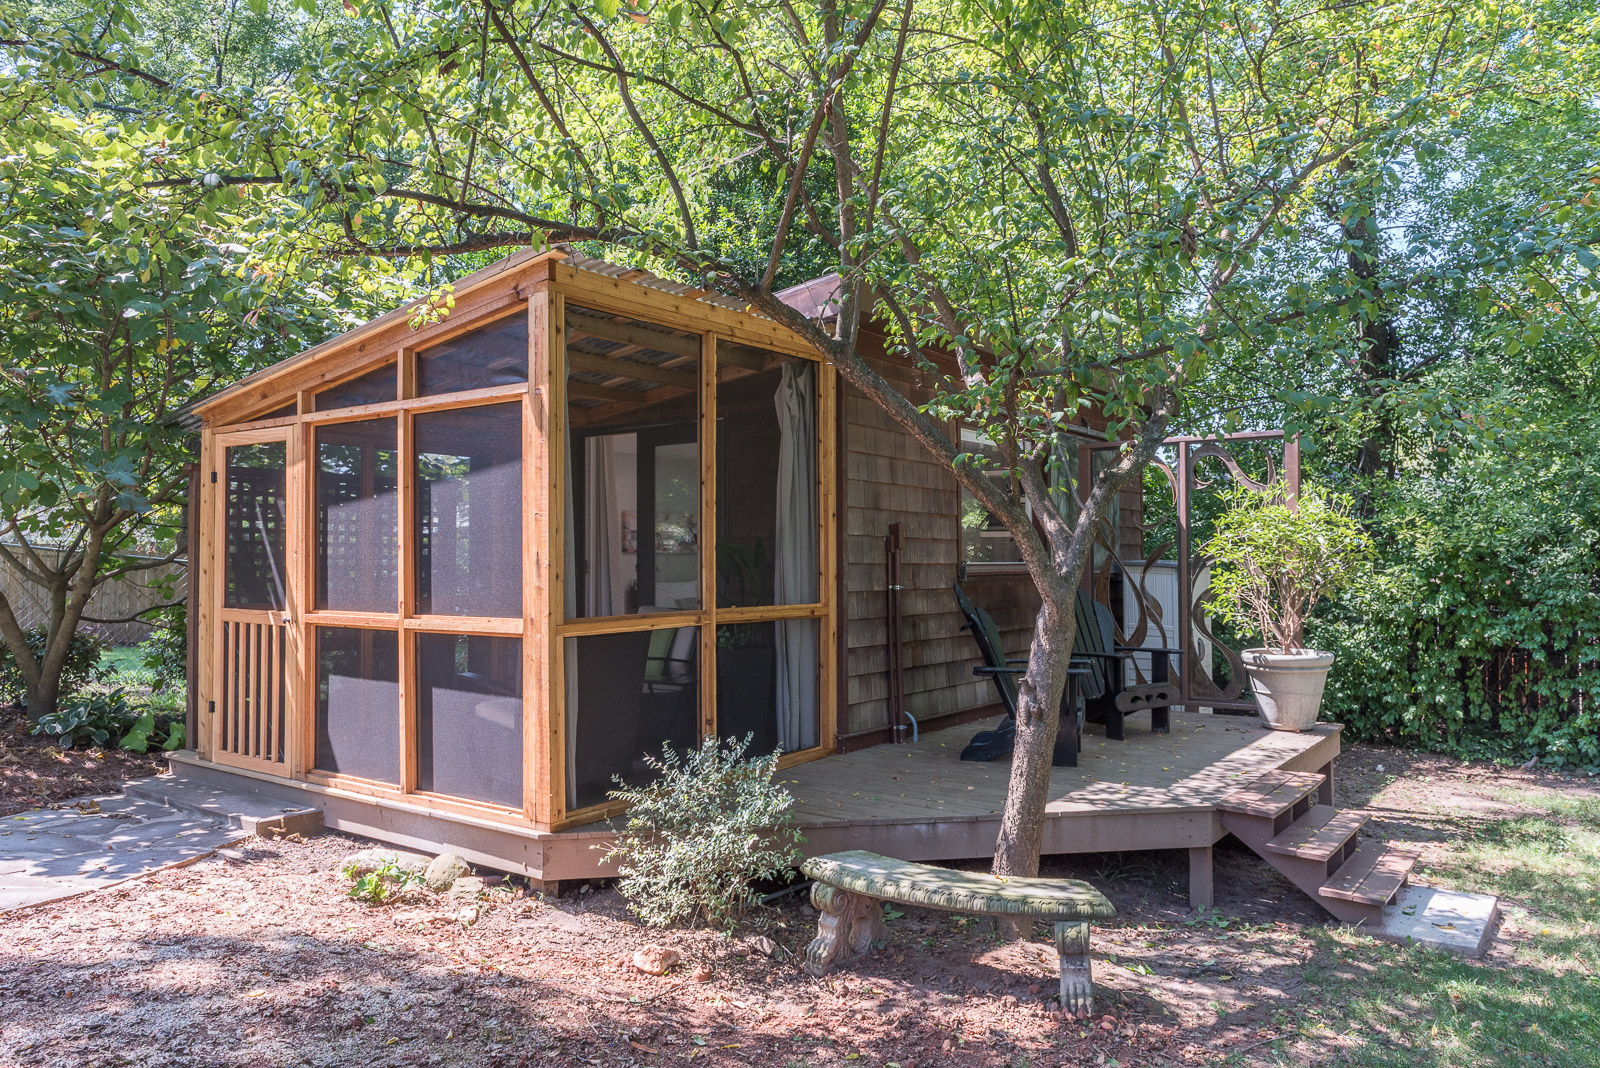 Atlanta Micro Home Tours